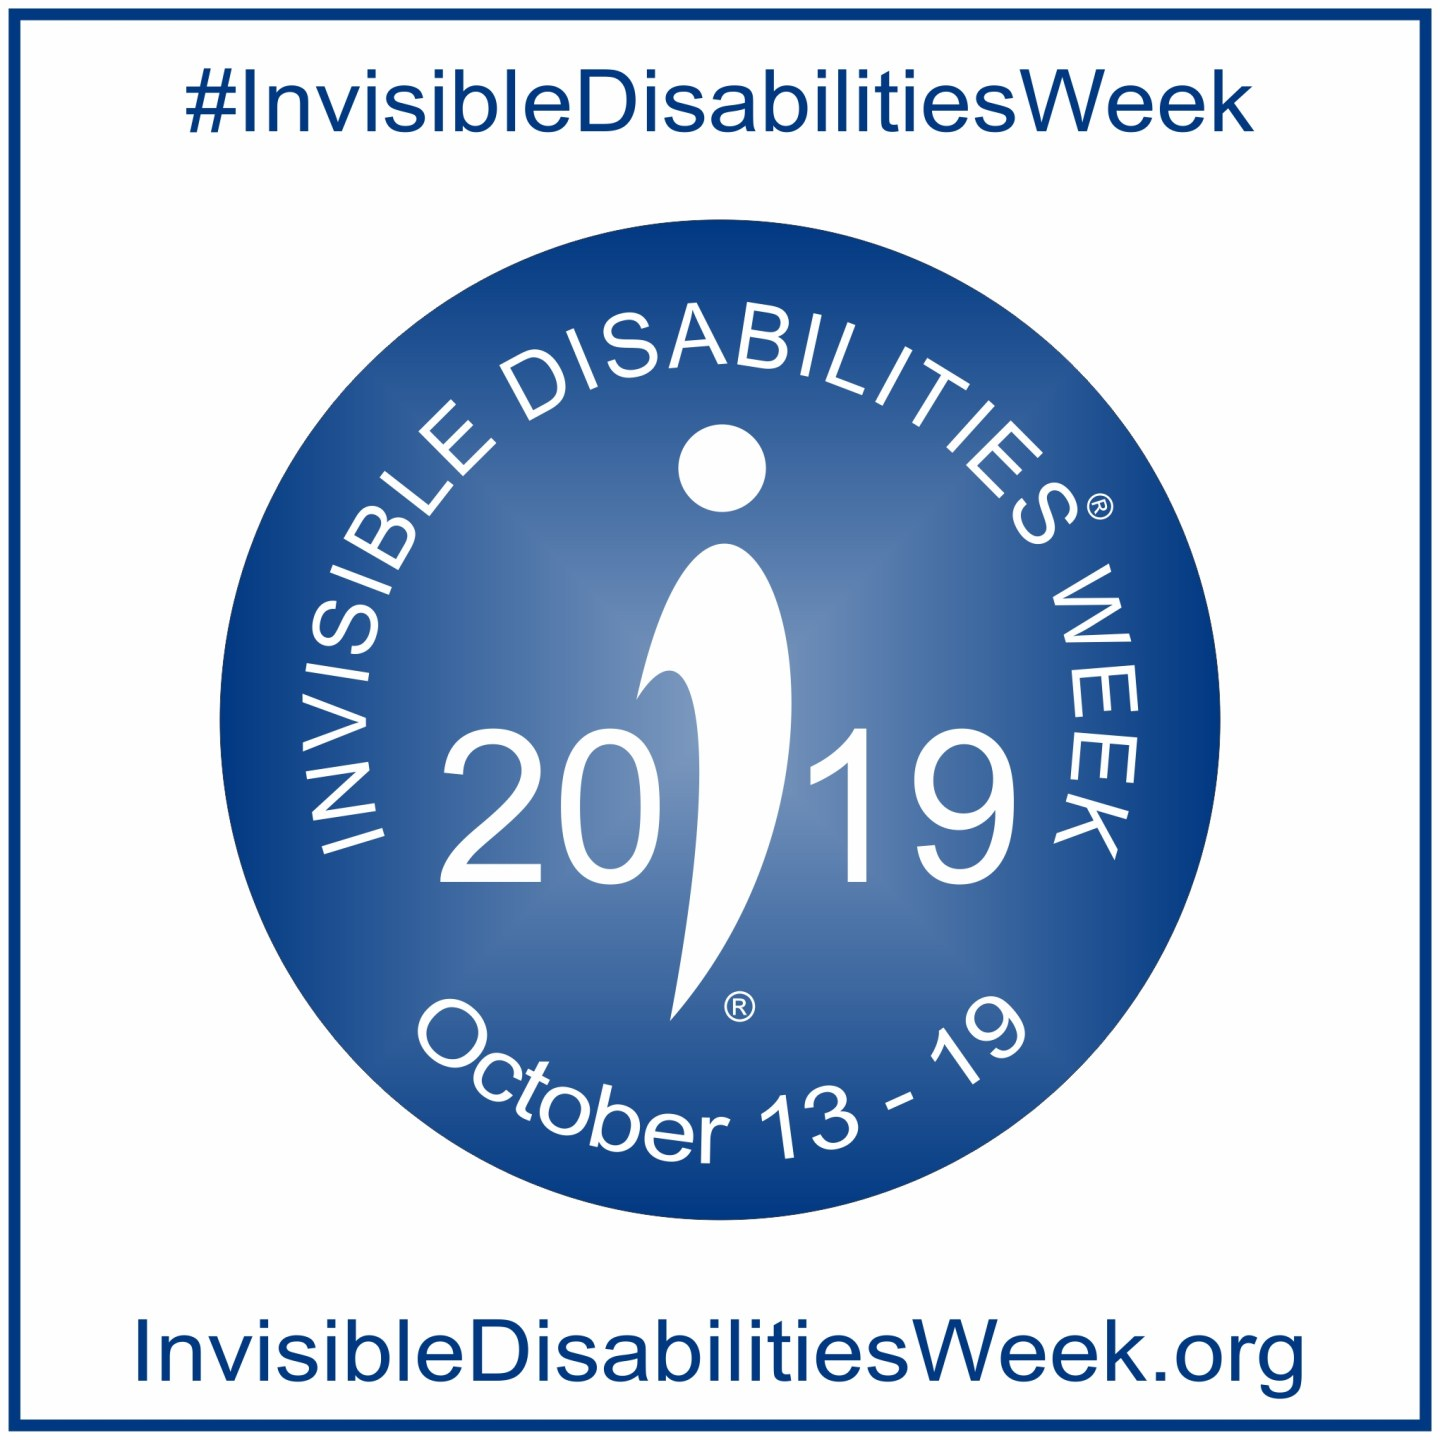 A blue and white image from the Invisible Disabilities Week website showing the dates for 2019's awareness week.